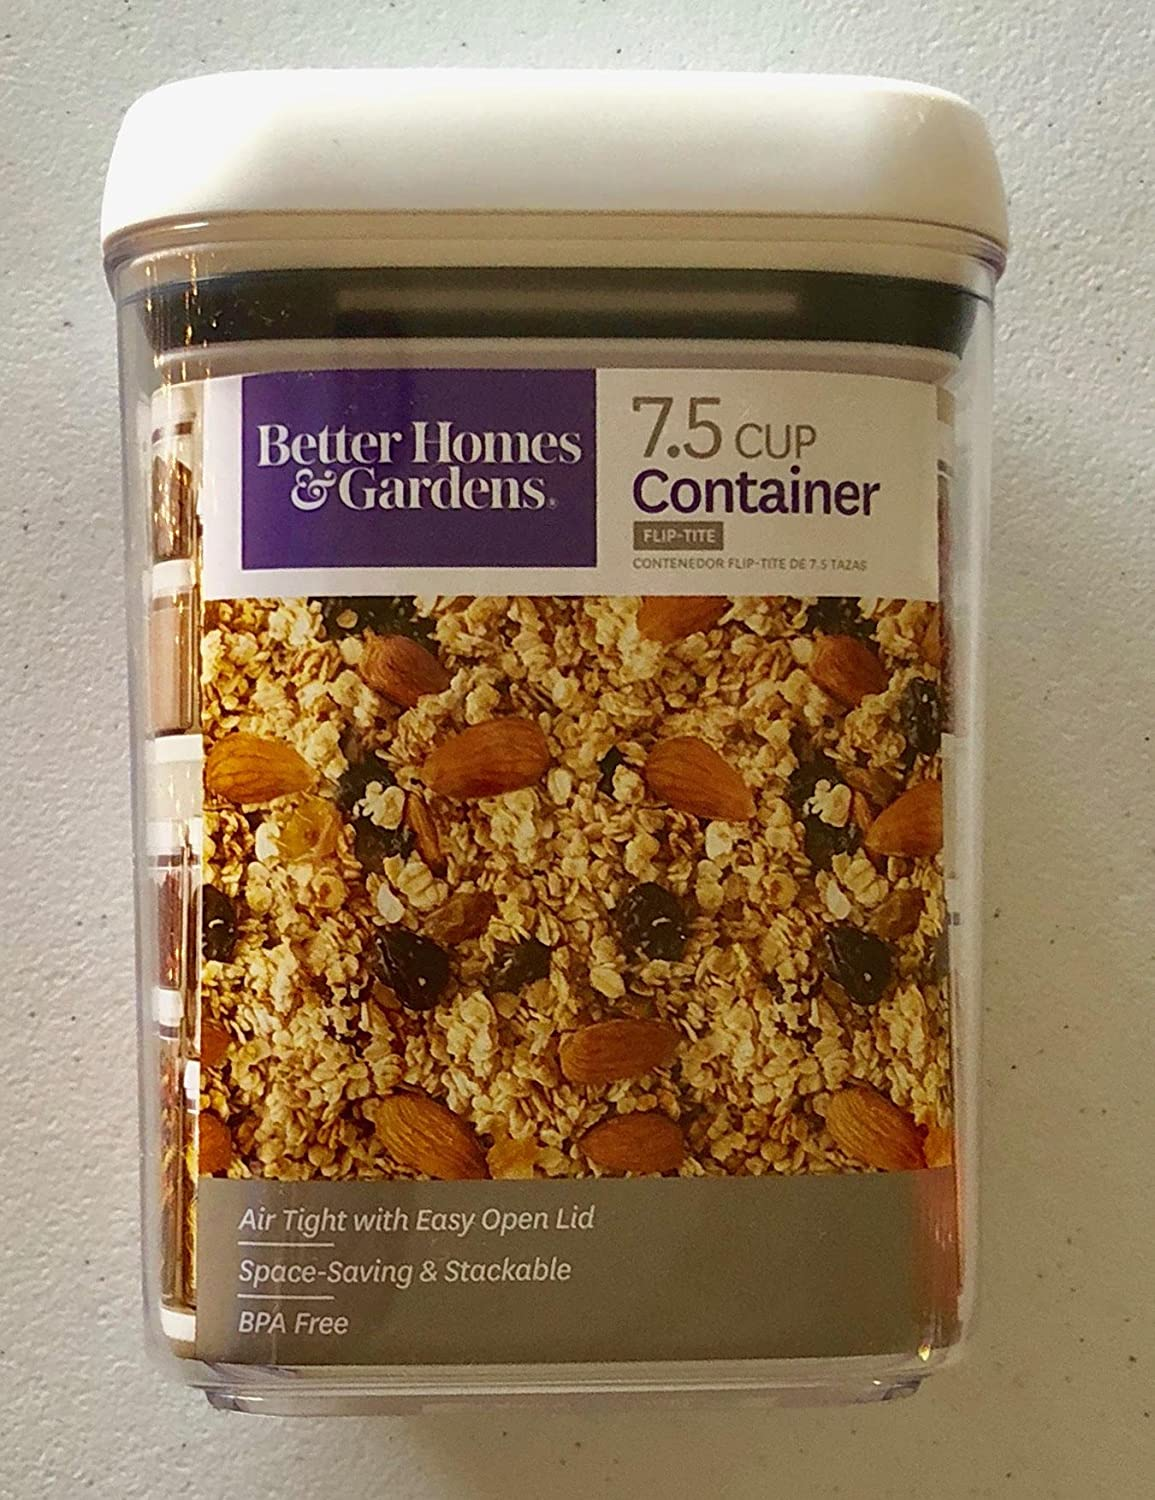 Better Homes and Gardens Flip-Tite 7.5 Cup Square Container (1)